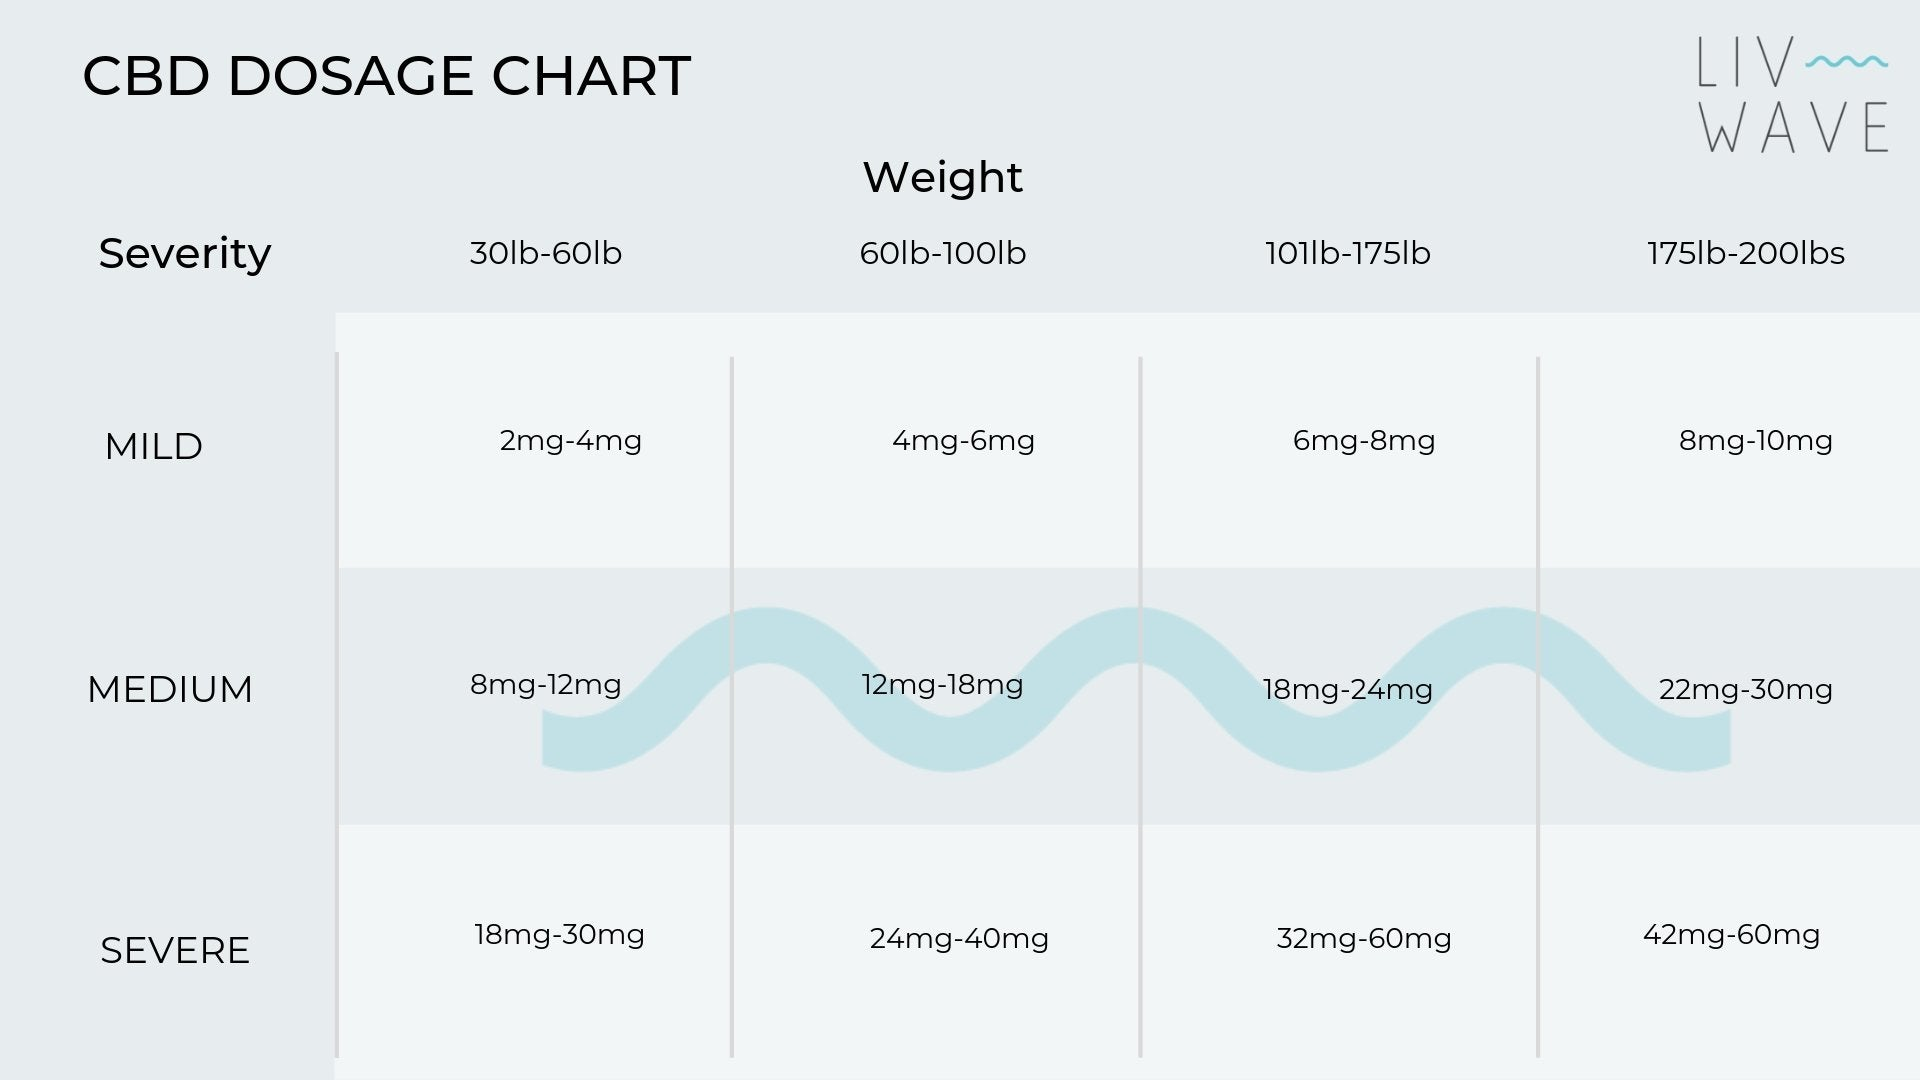 cbd dosage chart by weight